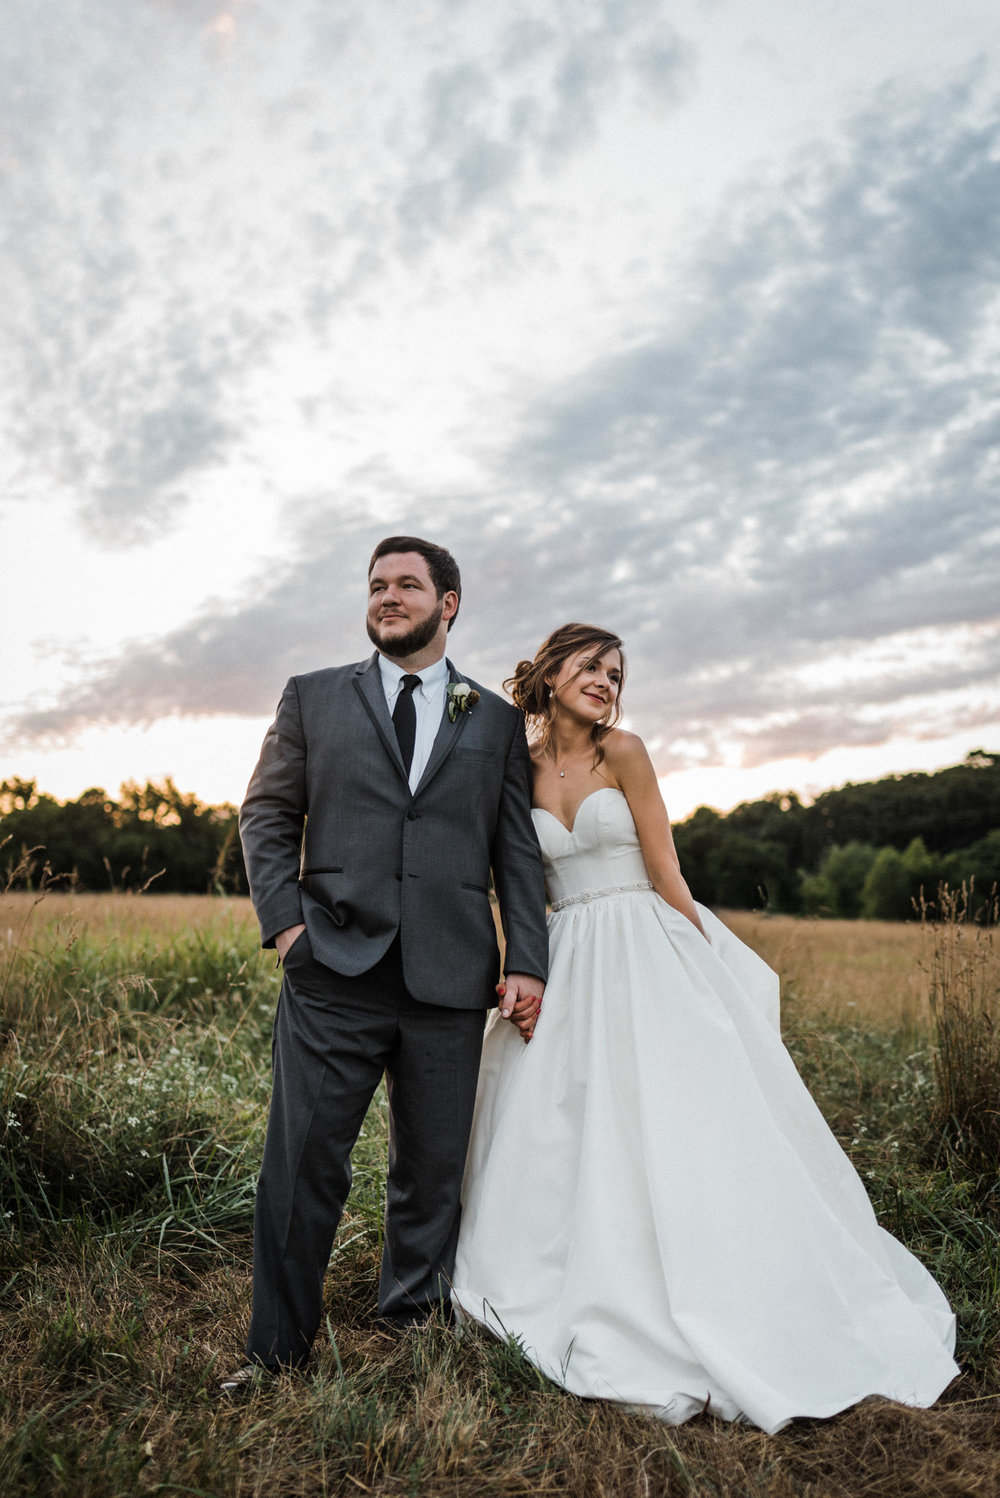 Megan & Blake at Sassafras Springs Vineyards Wedding - Tanner Burge Photography.jpg